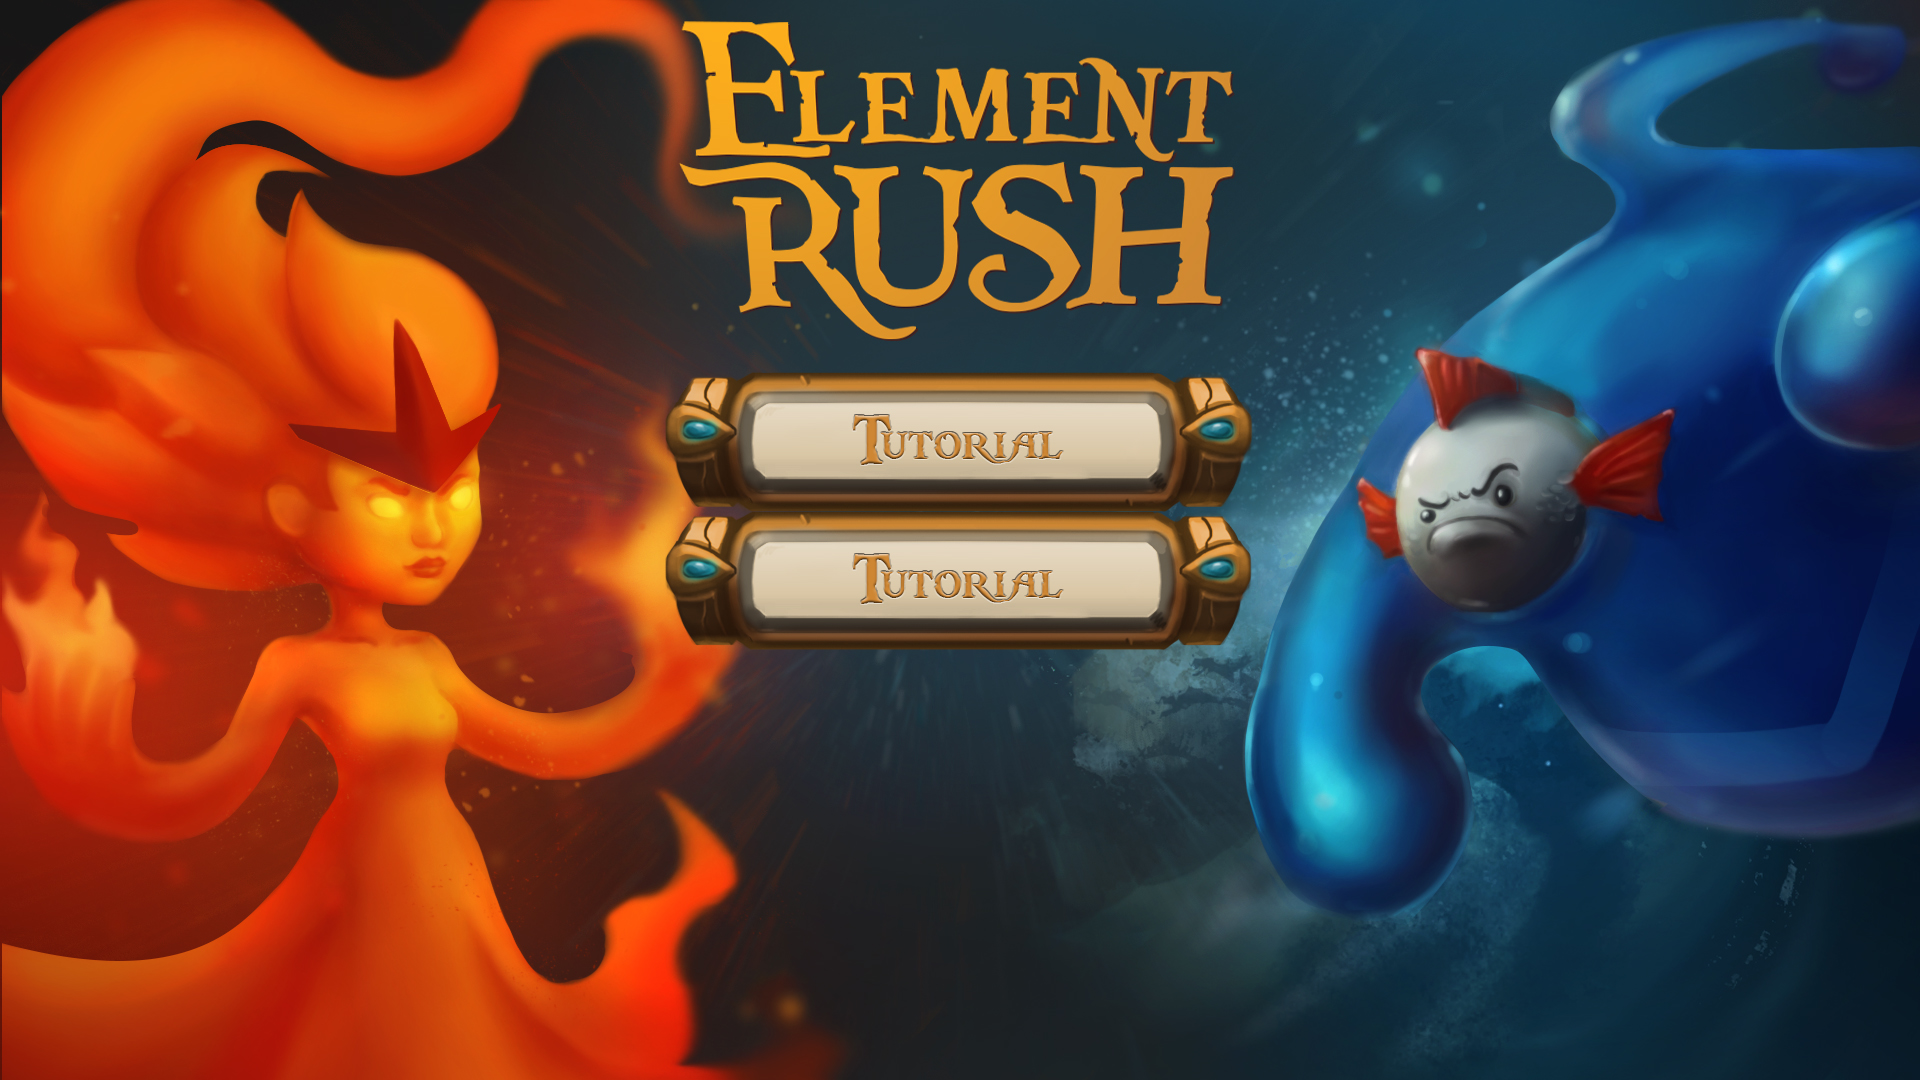 Main menu UI design for Element Rush